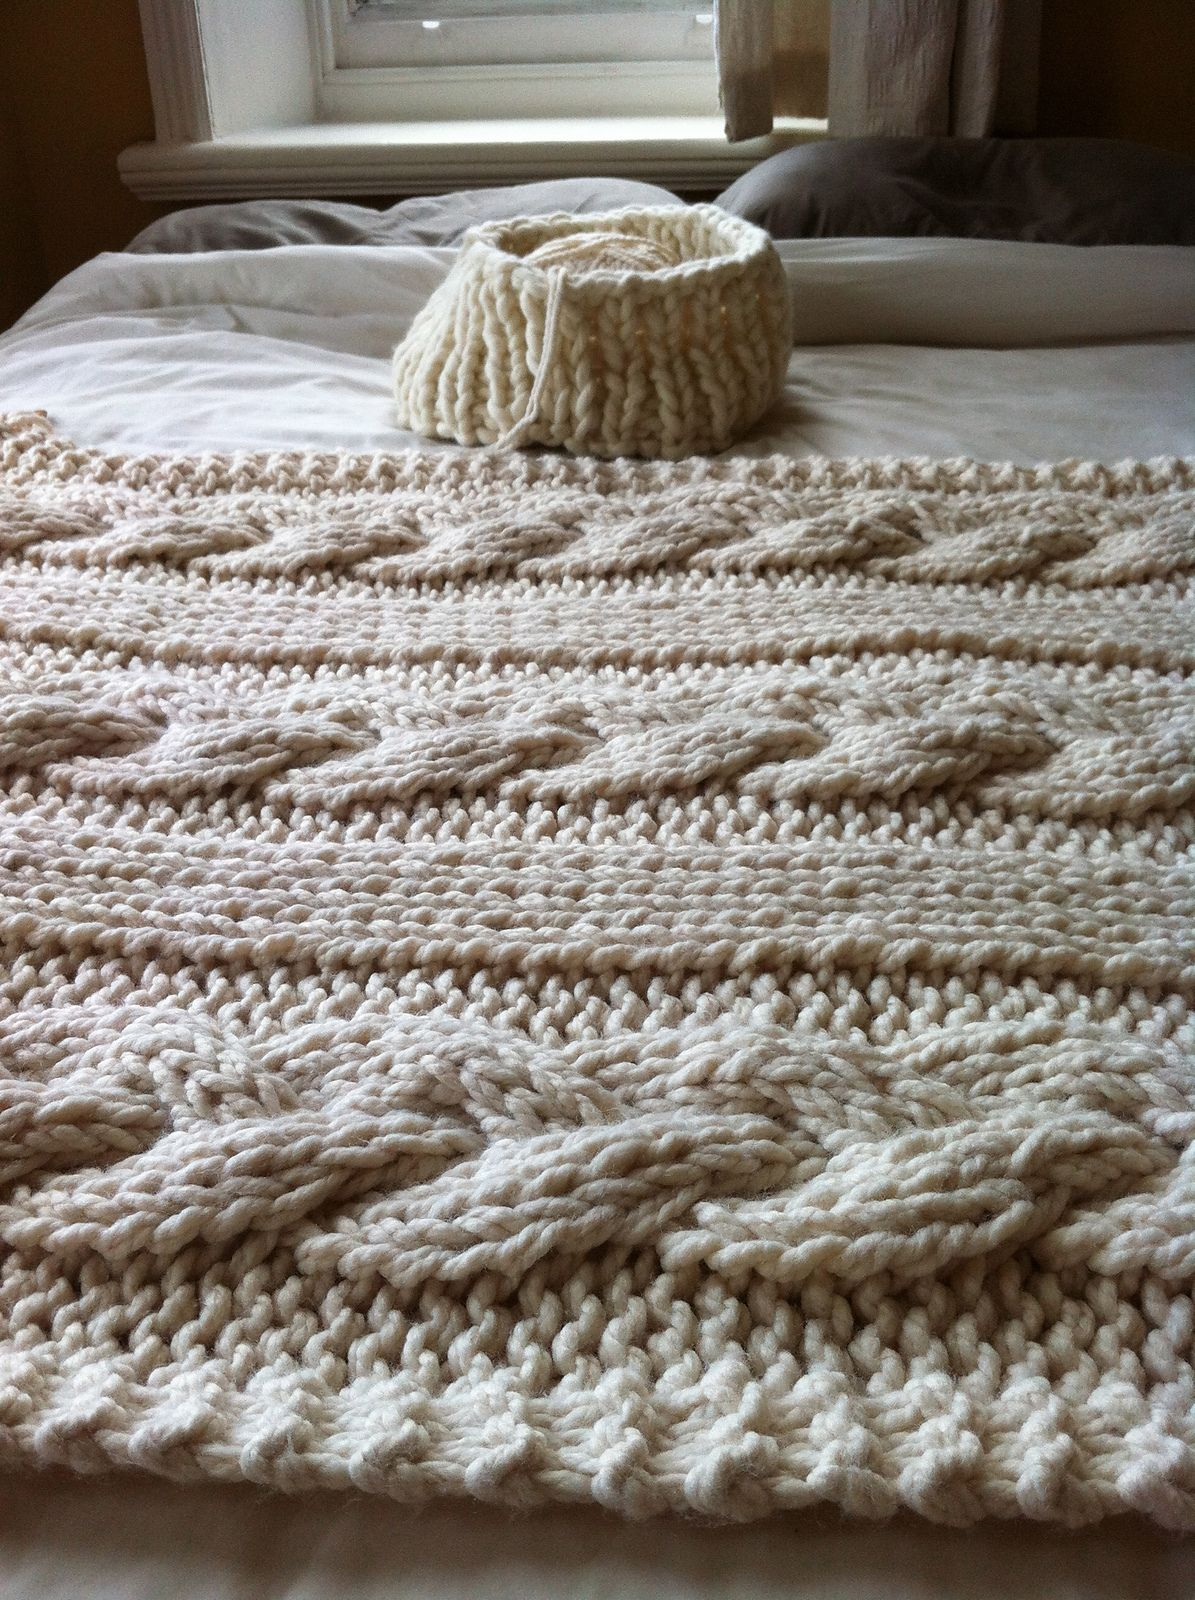 Ravelry: Cable Knit Blanket by Knitting Revolution | crochet ...